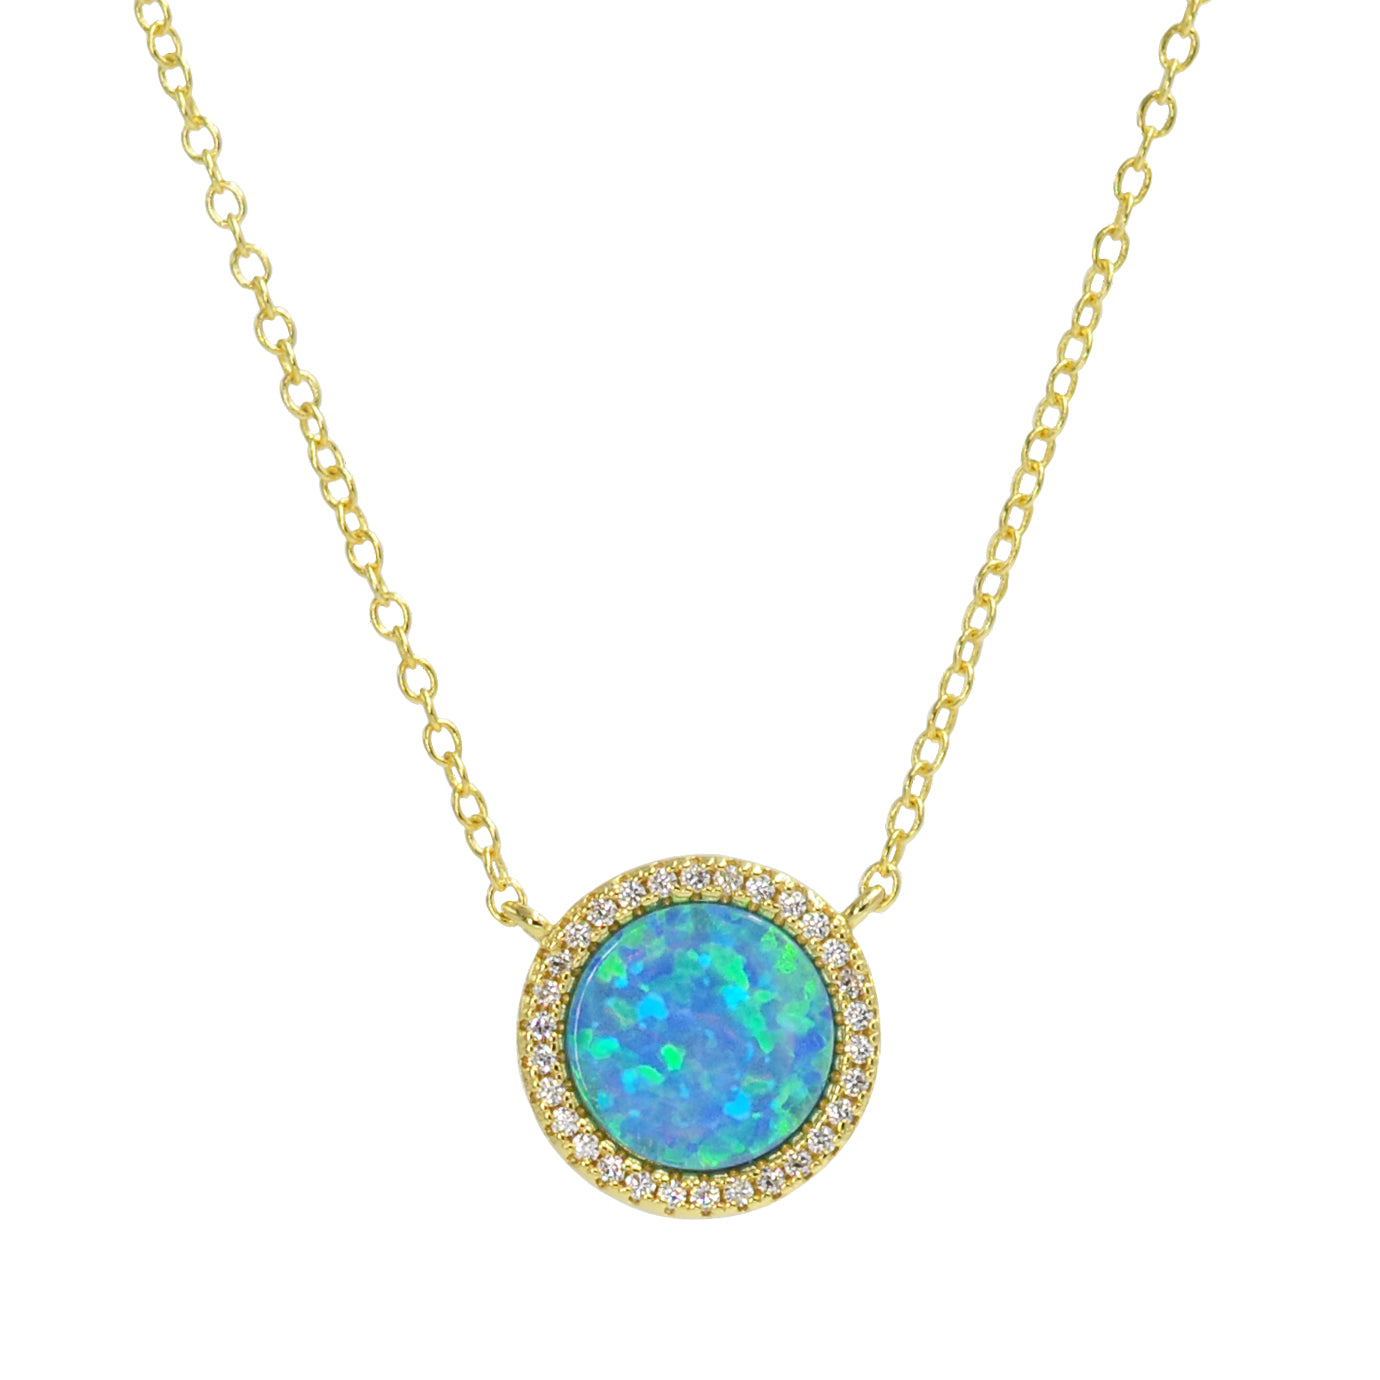 Beacon opal circle necklace with crystals in blue opal and gold